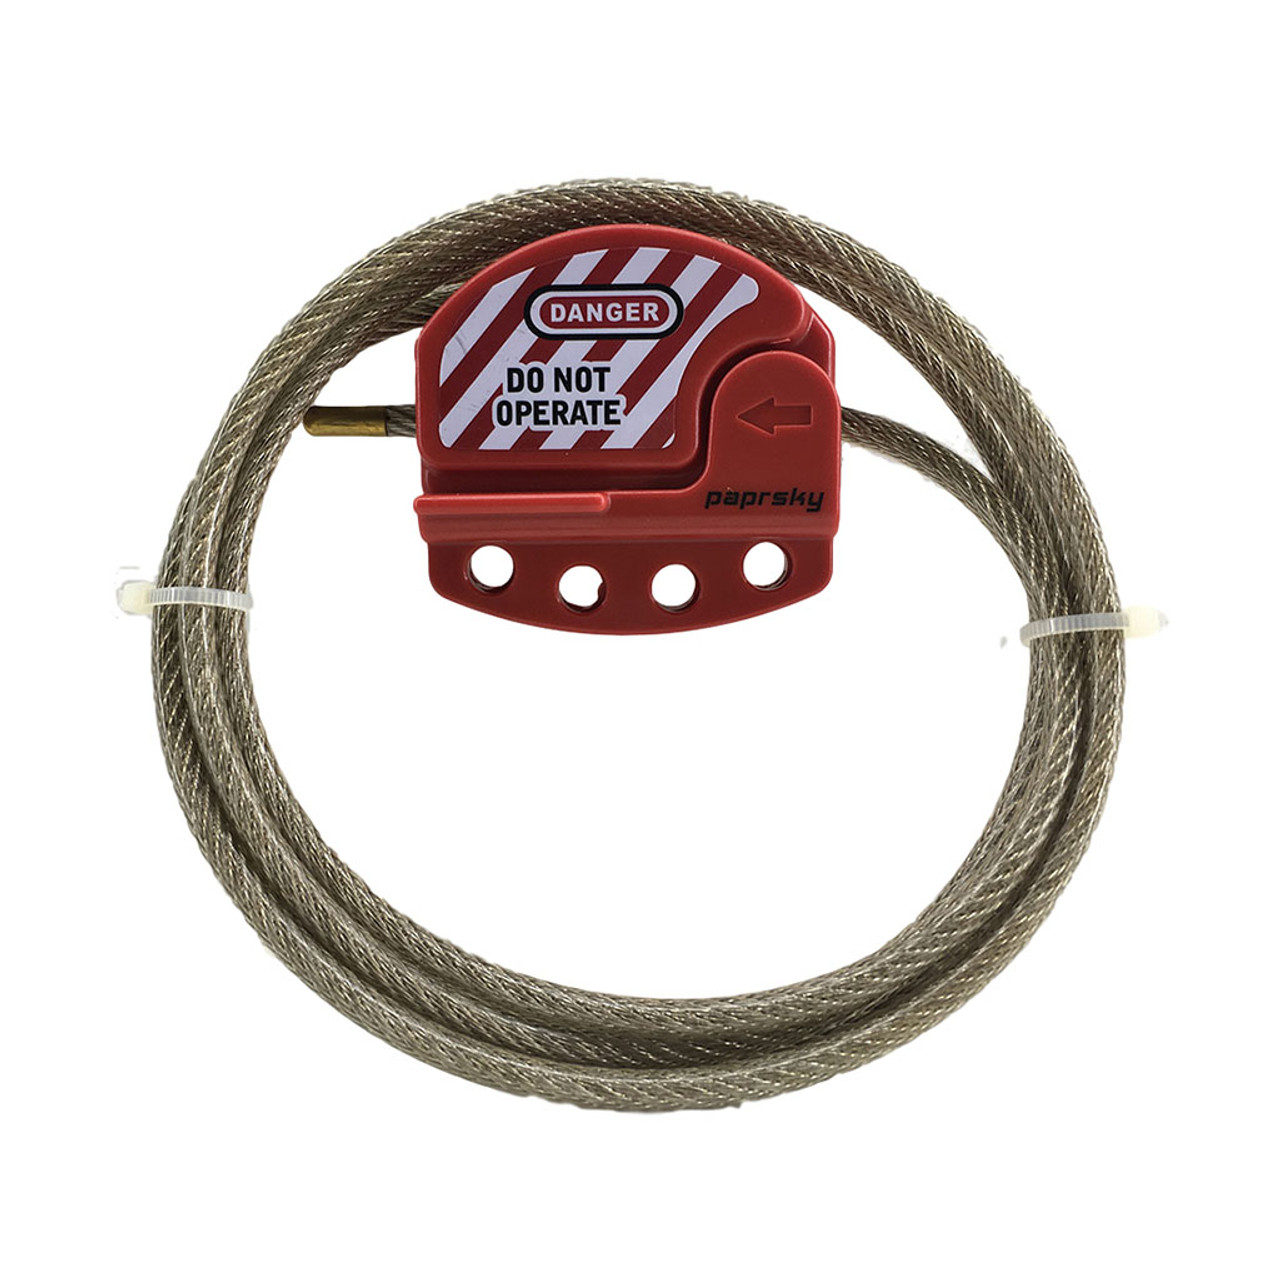 Adjustable Cable Lockout - 4mm PS-LOTO-ACL4